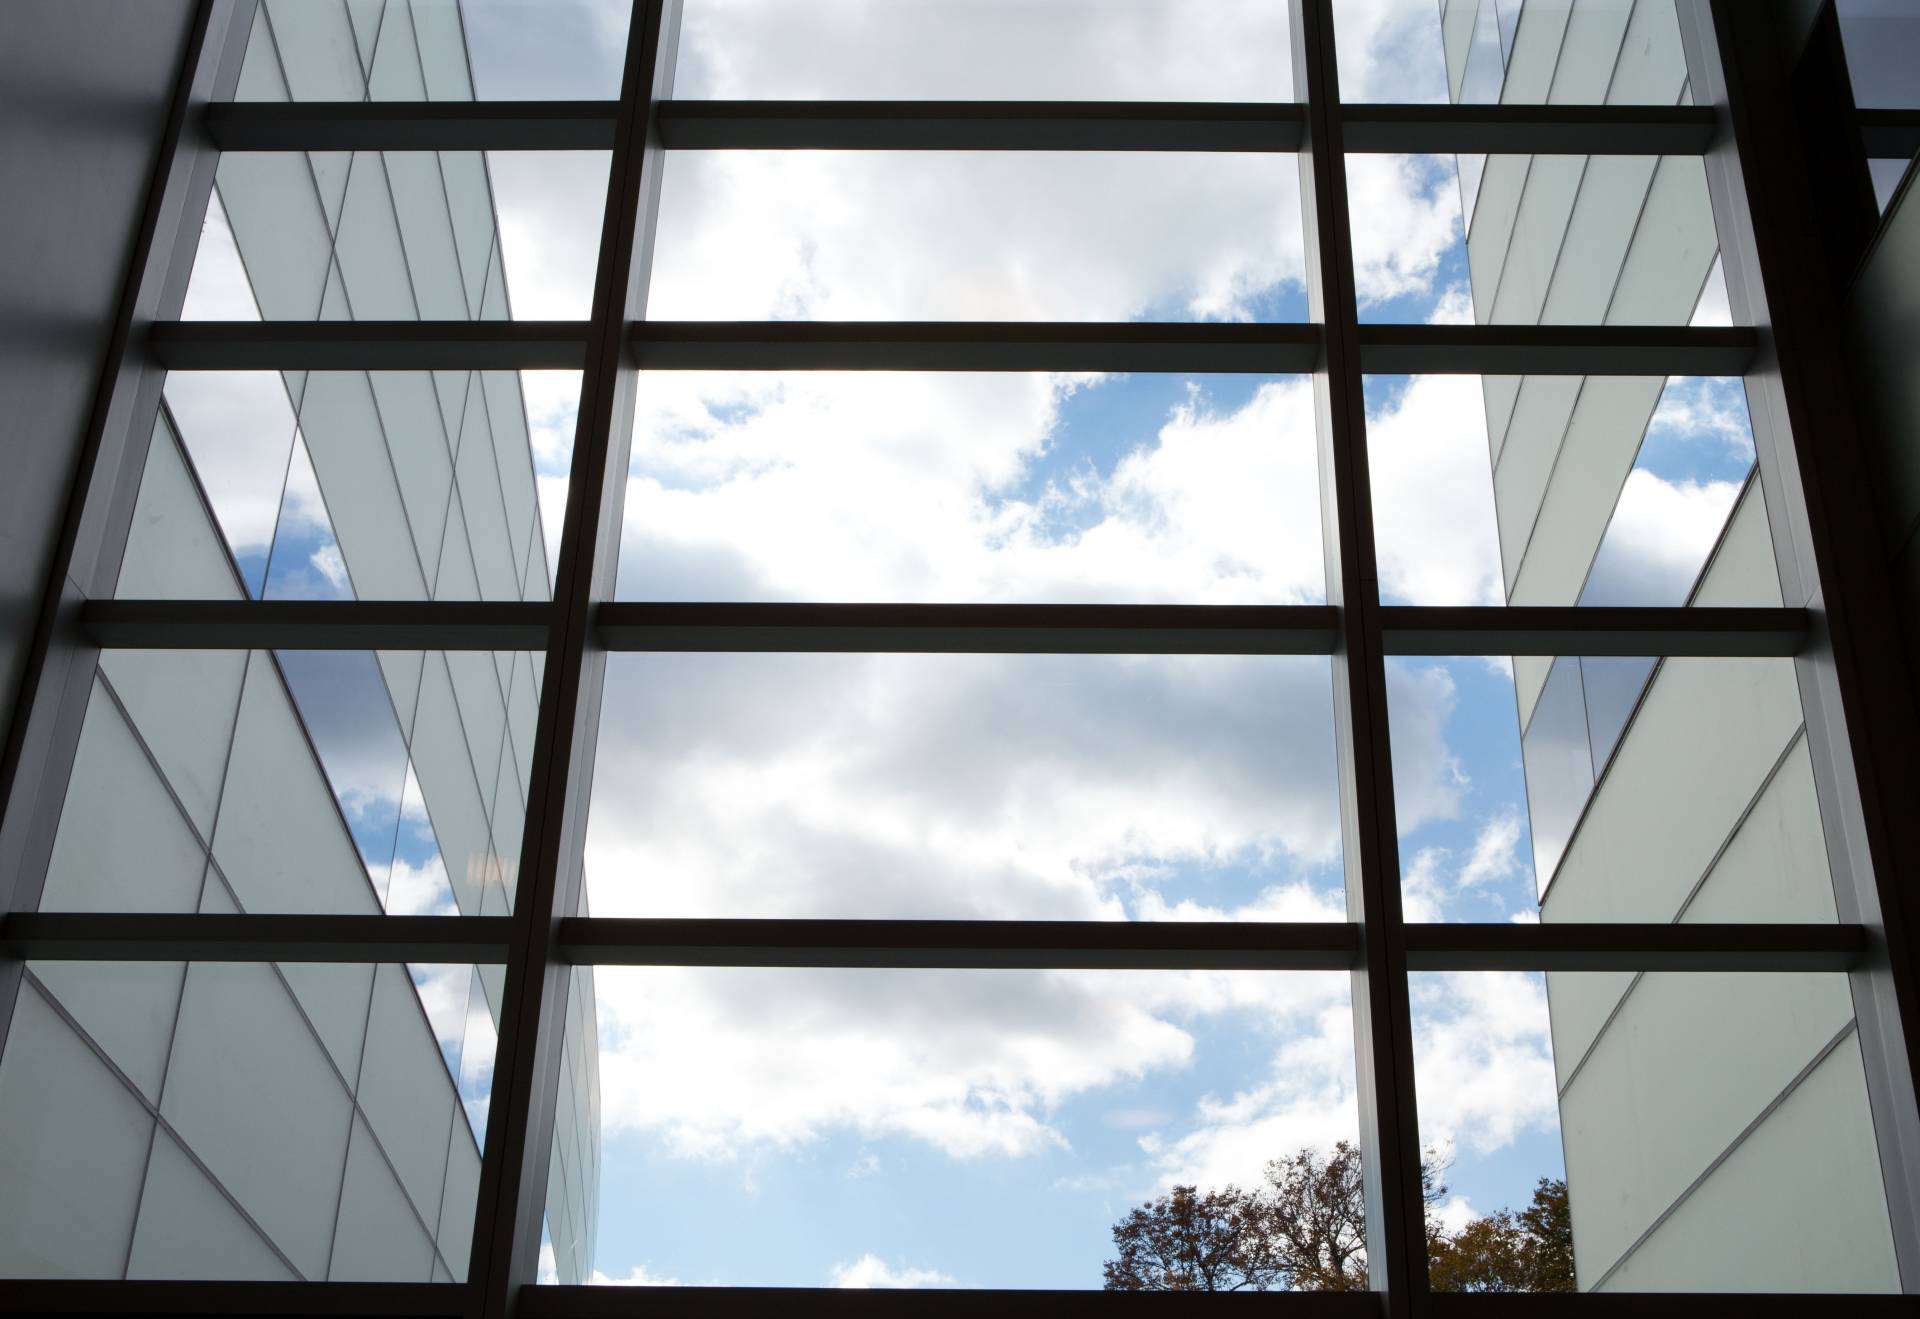 Photo of the sky as seen through windows of the Princeton neuroscience building.